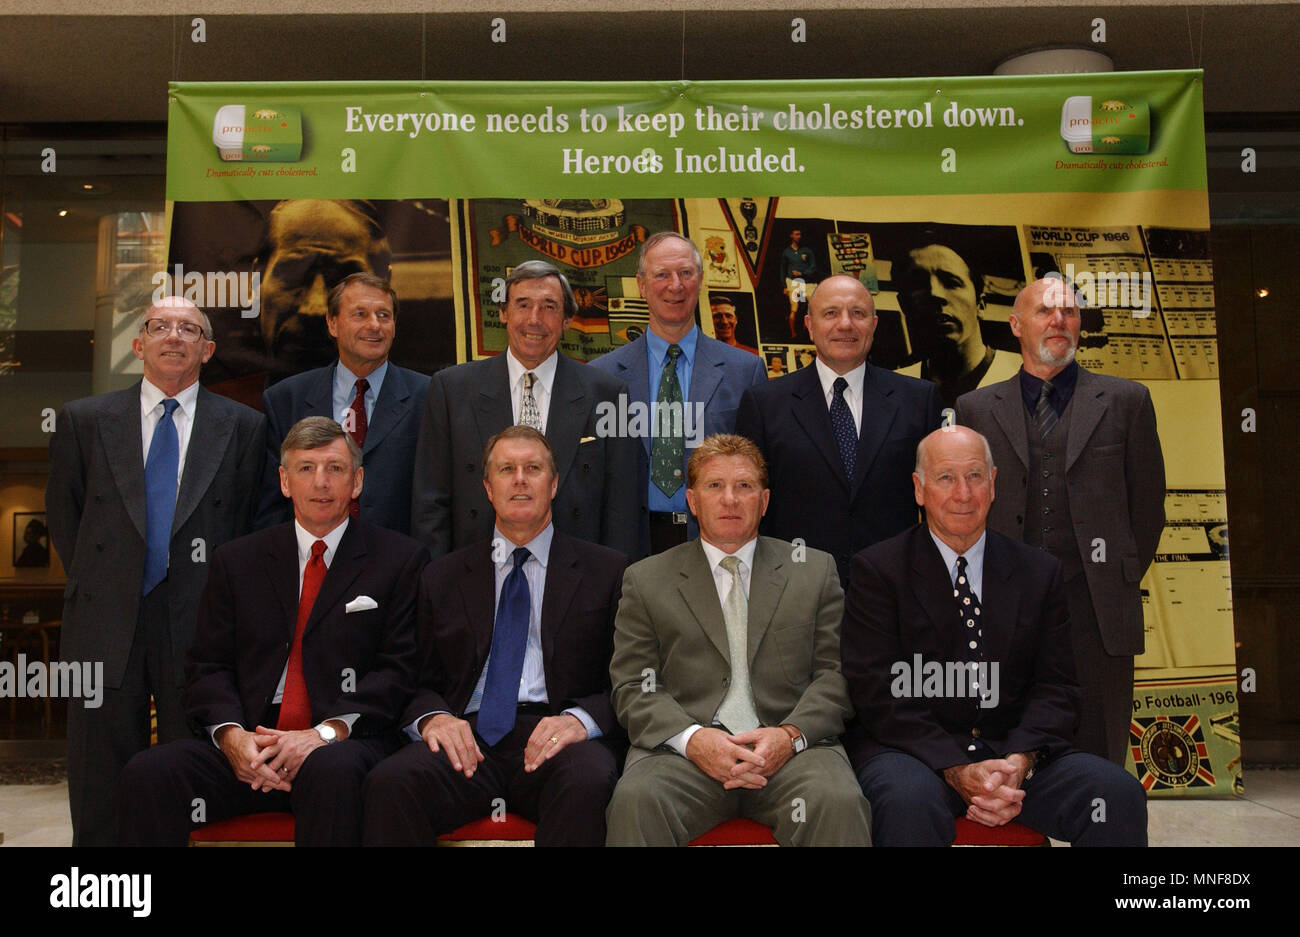 ©Alpha Press 047593 23/04/02   BACK ROW: NOBBY STILES  ROGER HUNT  GORDON BANKS  JACK CHARLTON  GEORGE COHEN AND RAY WILSON   FRONT ROW: MARTIN PETERS  SIR GEOFF HURST  ALAN BALL AND SIR BOBBY CHARLTON   -ENGLAND'S 1966 WORLD CUP TEAM LAUNCH CHOLESTEROL AWARENESS CAMPAIGN FOR 50-60 YEAR OLDS AT THE ROYAL SOCIETY MEDICIEN  LONDON   1966 ENGLAND TEAM CONGREGATING FOR LOWER COLESTEROL CAMPAIGN   LONDON COLLEGE OF MEDICINE  LONDON   CREDIT PHOTO KARWAI TANG / ALPHA PRESS - Stock Image